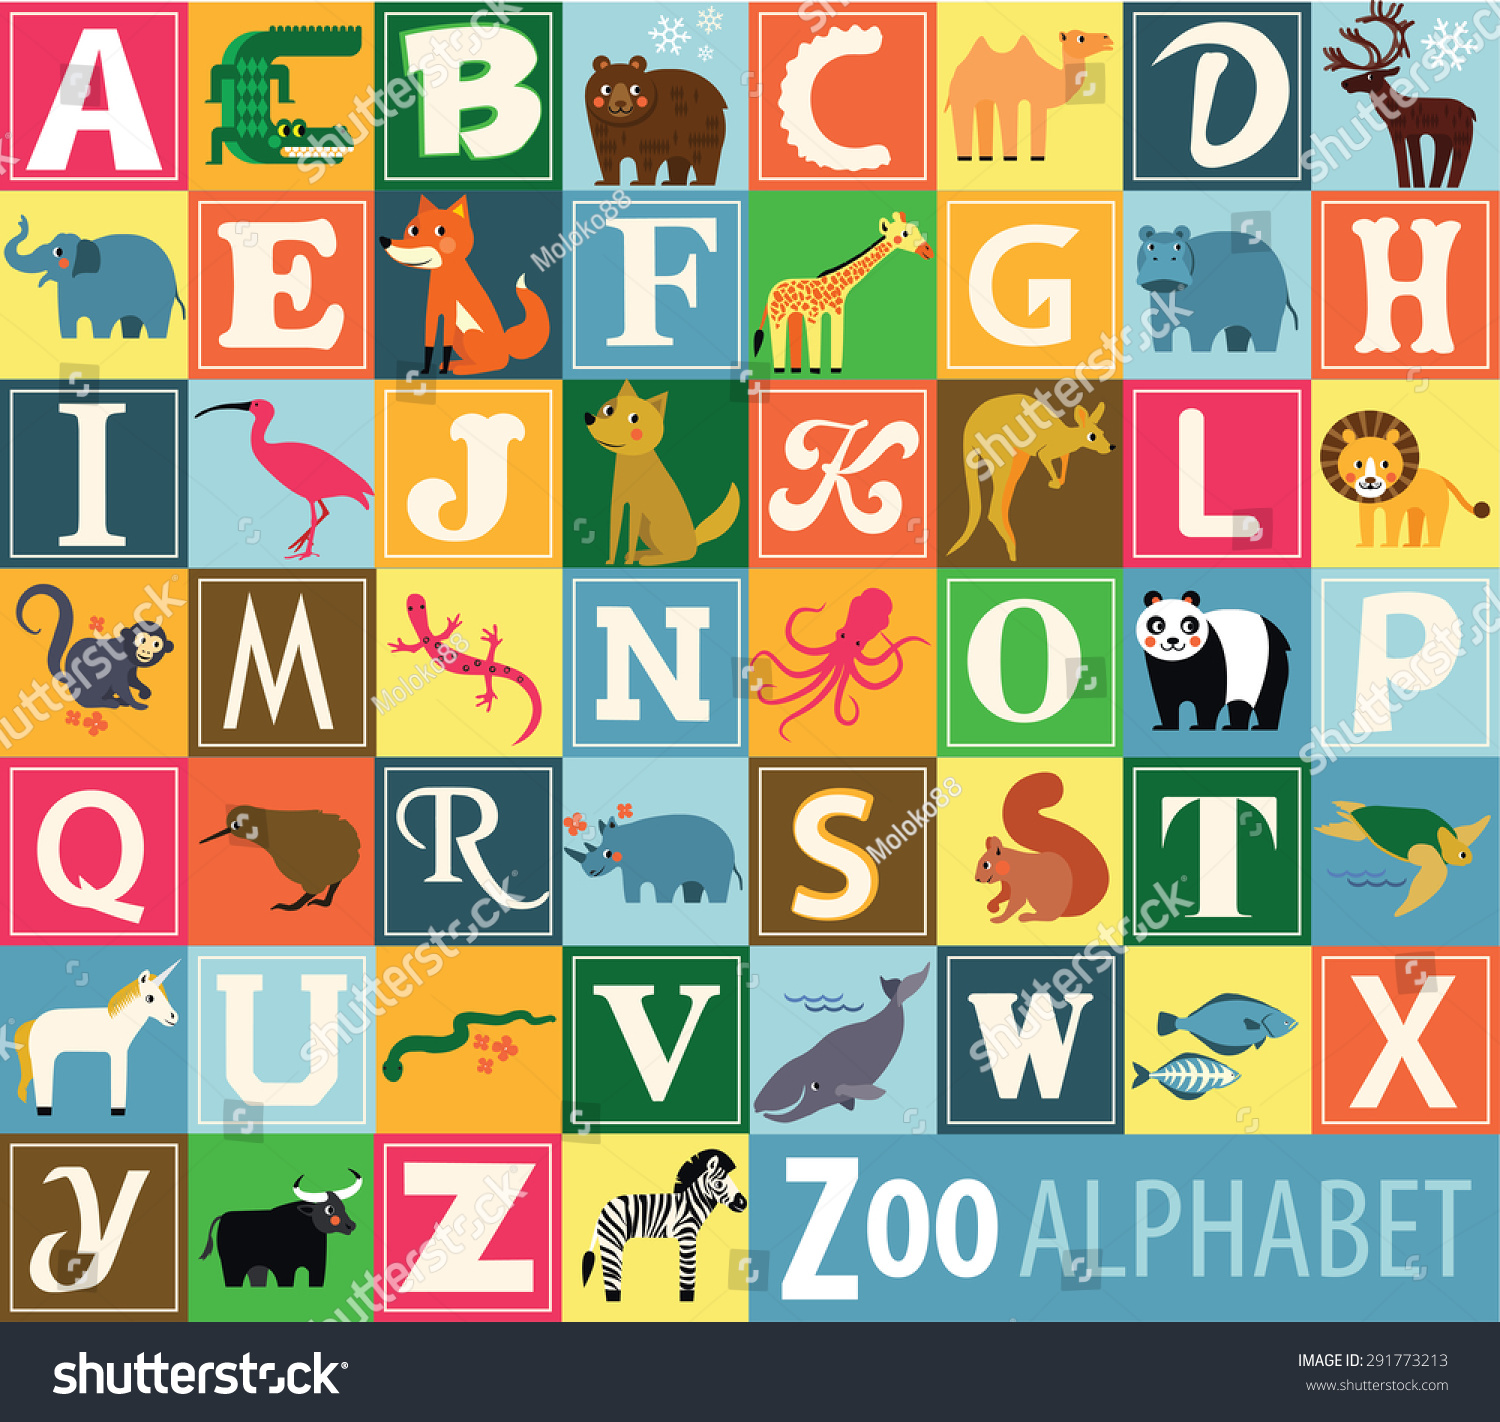 Alphabet at The Zoo Details